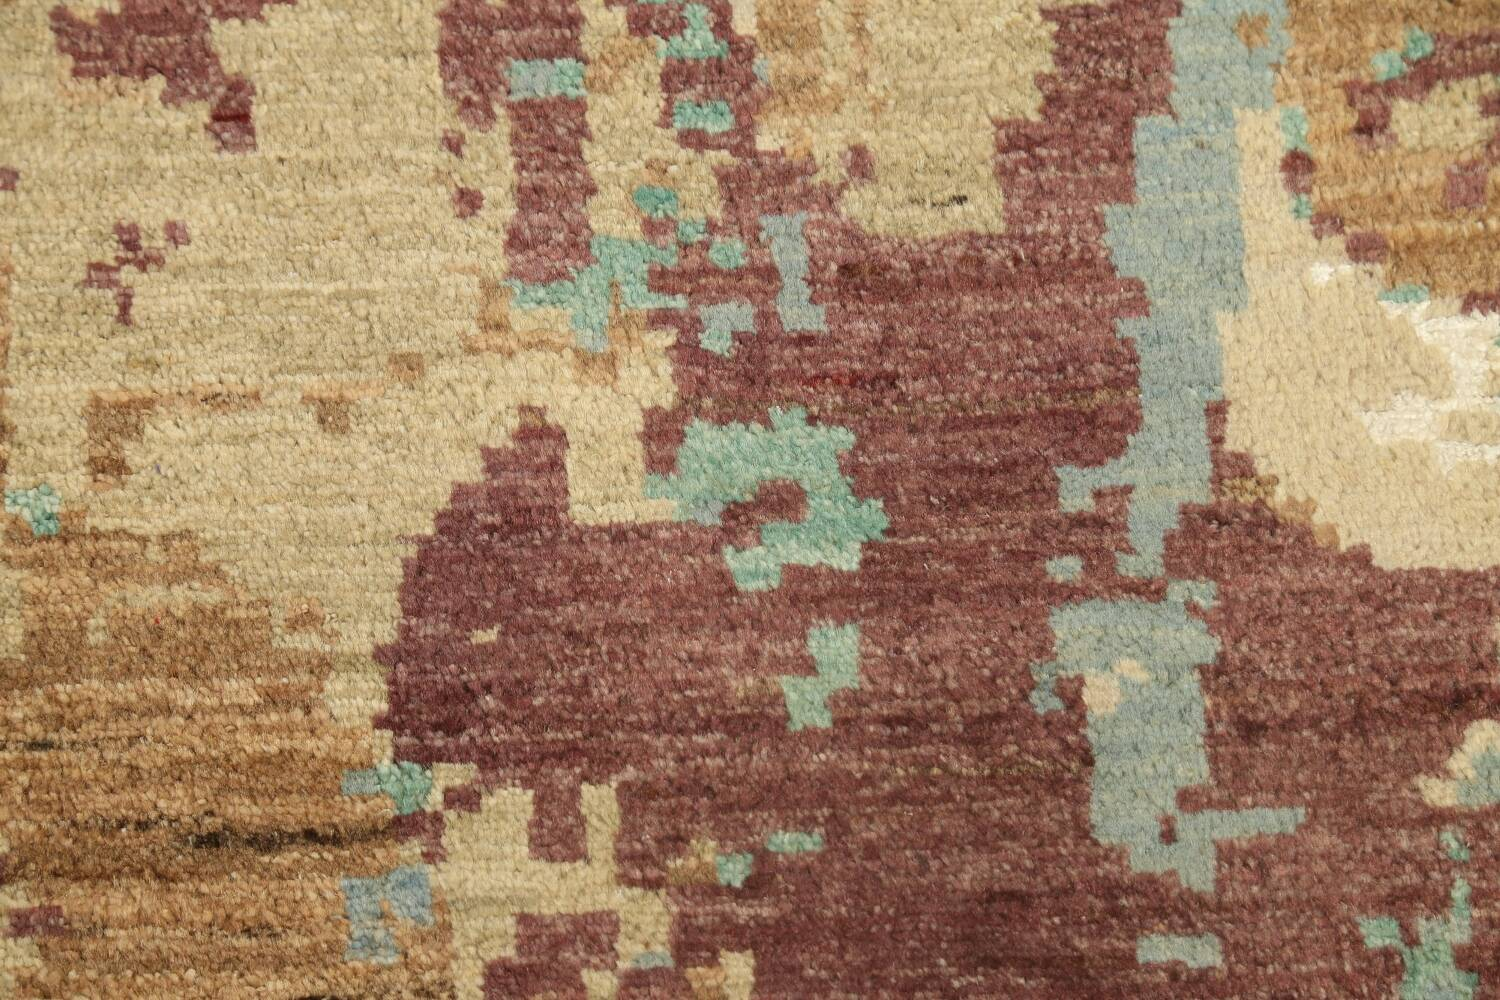 Vegetable Dye Contemporary Abstract Oriental Area Rug 6x9 image 10